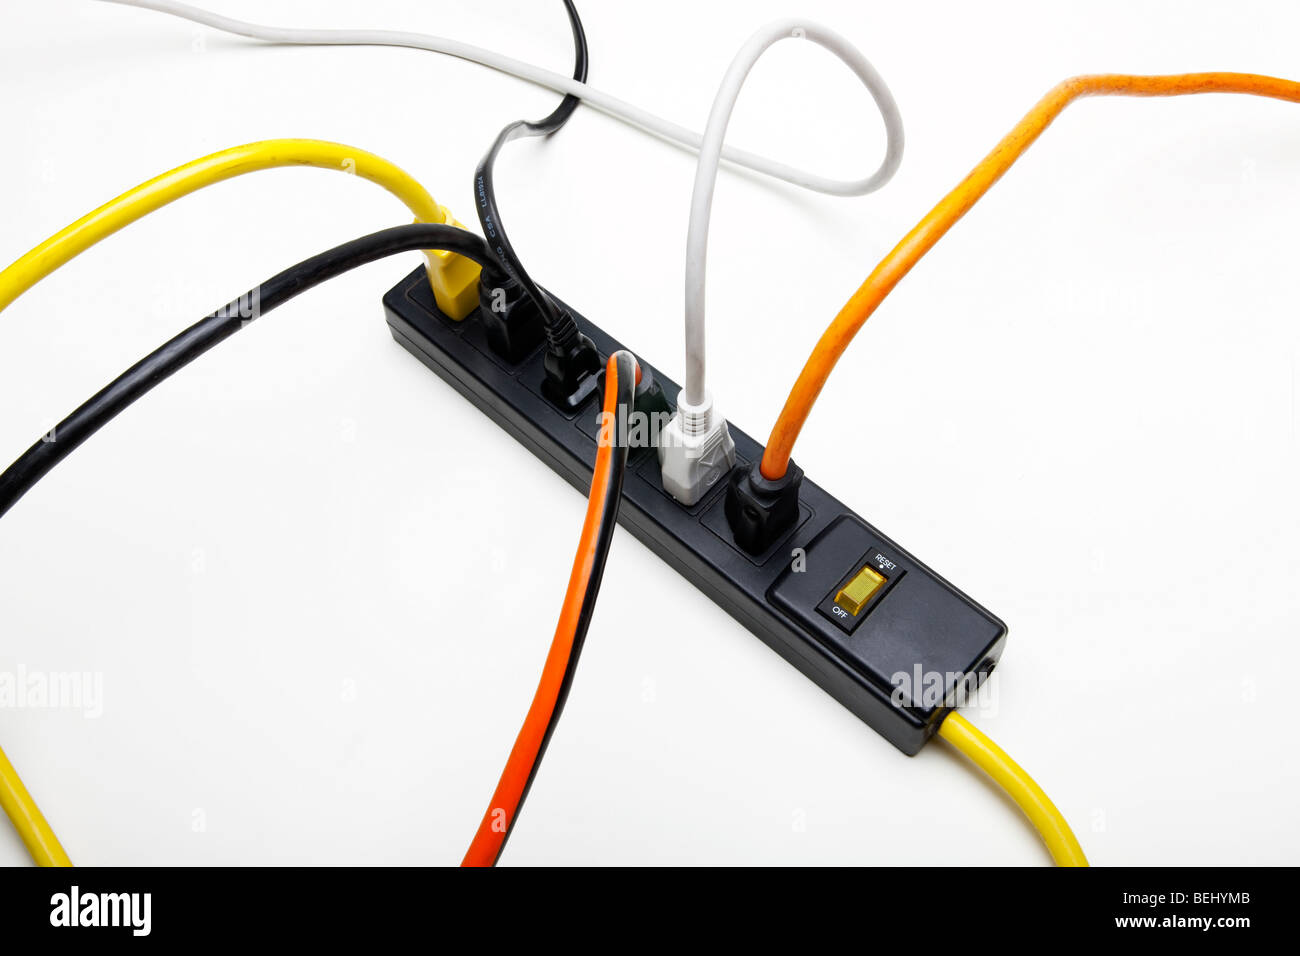 Tangled Electrical Cords Stock Photos Wiring Extension Cord Plug Australia Power Into A Surge Protector Image